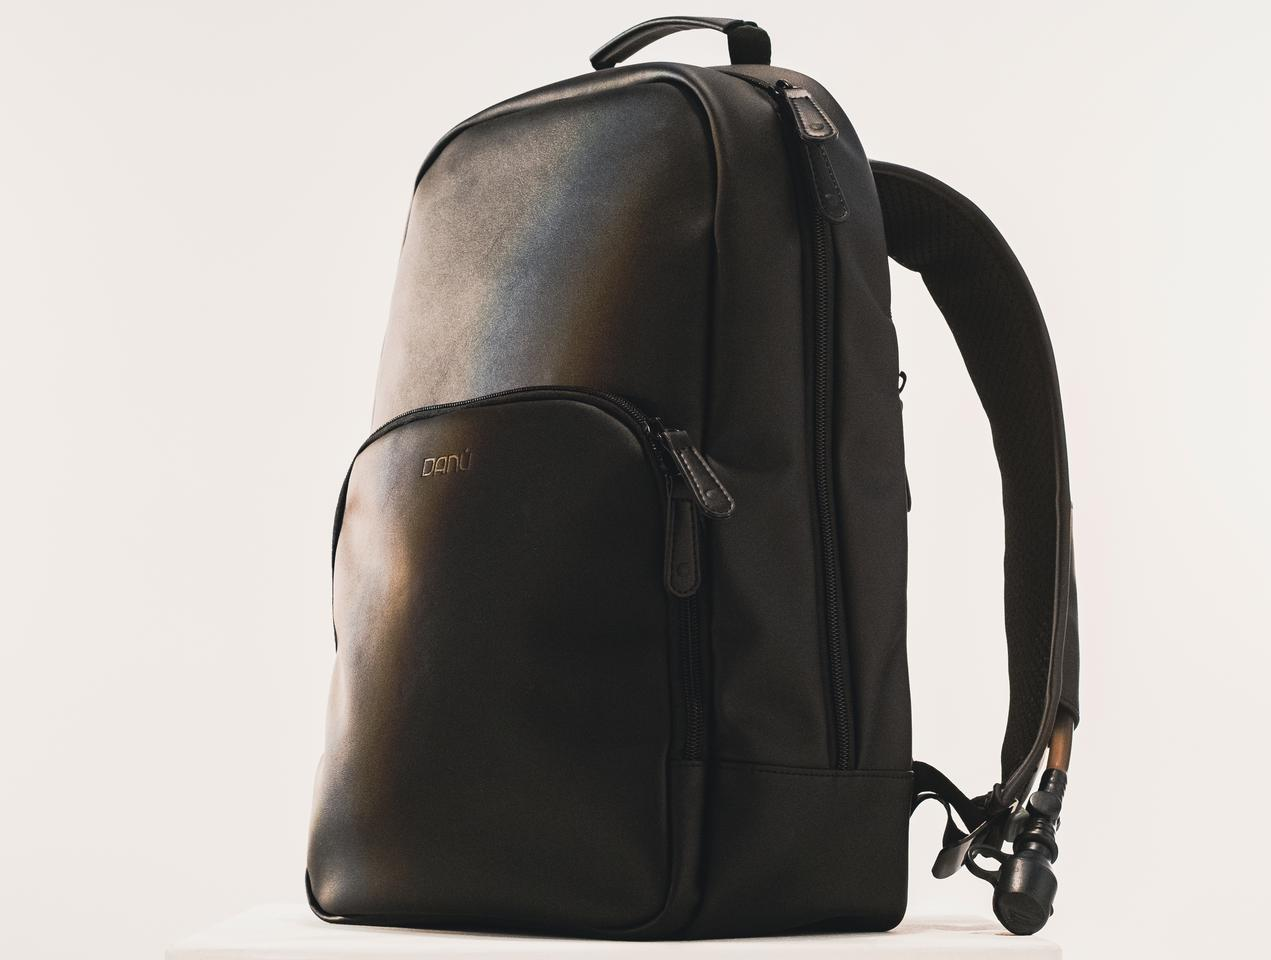 The Danú Bag is being offered in five earth tone colors